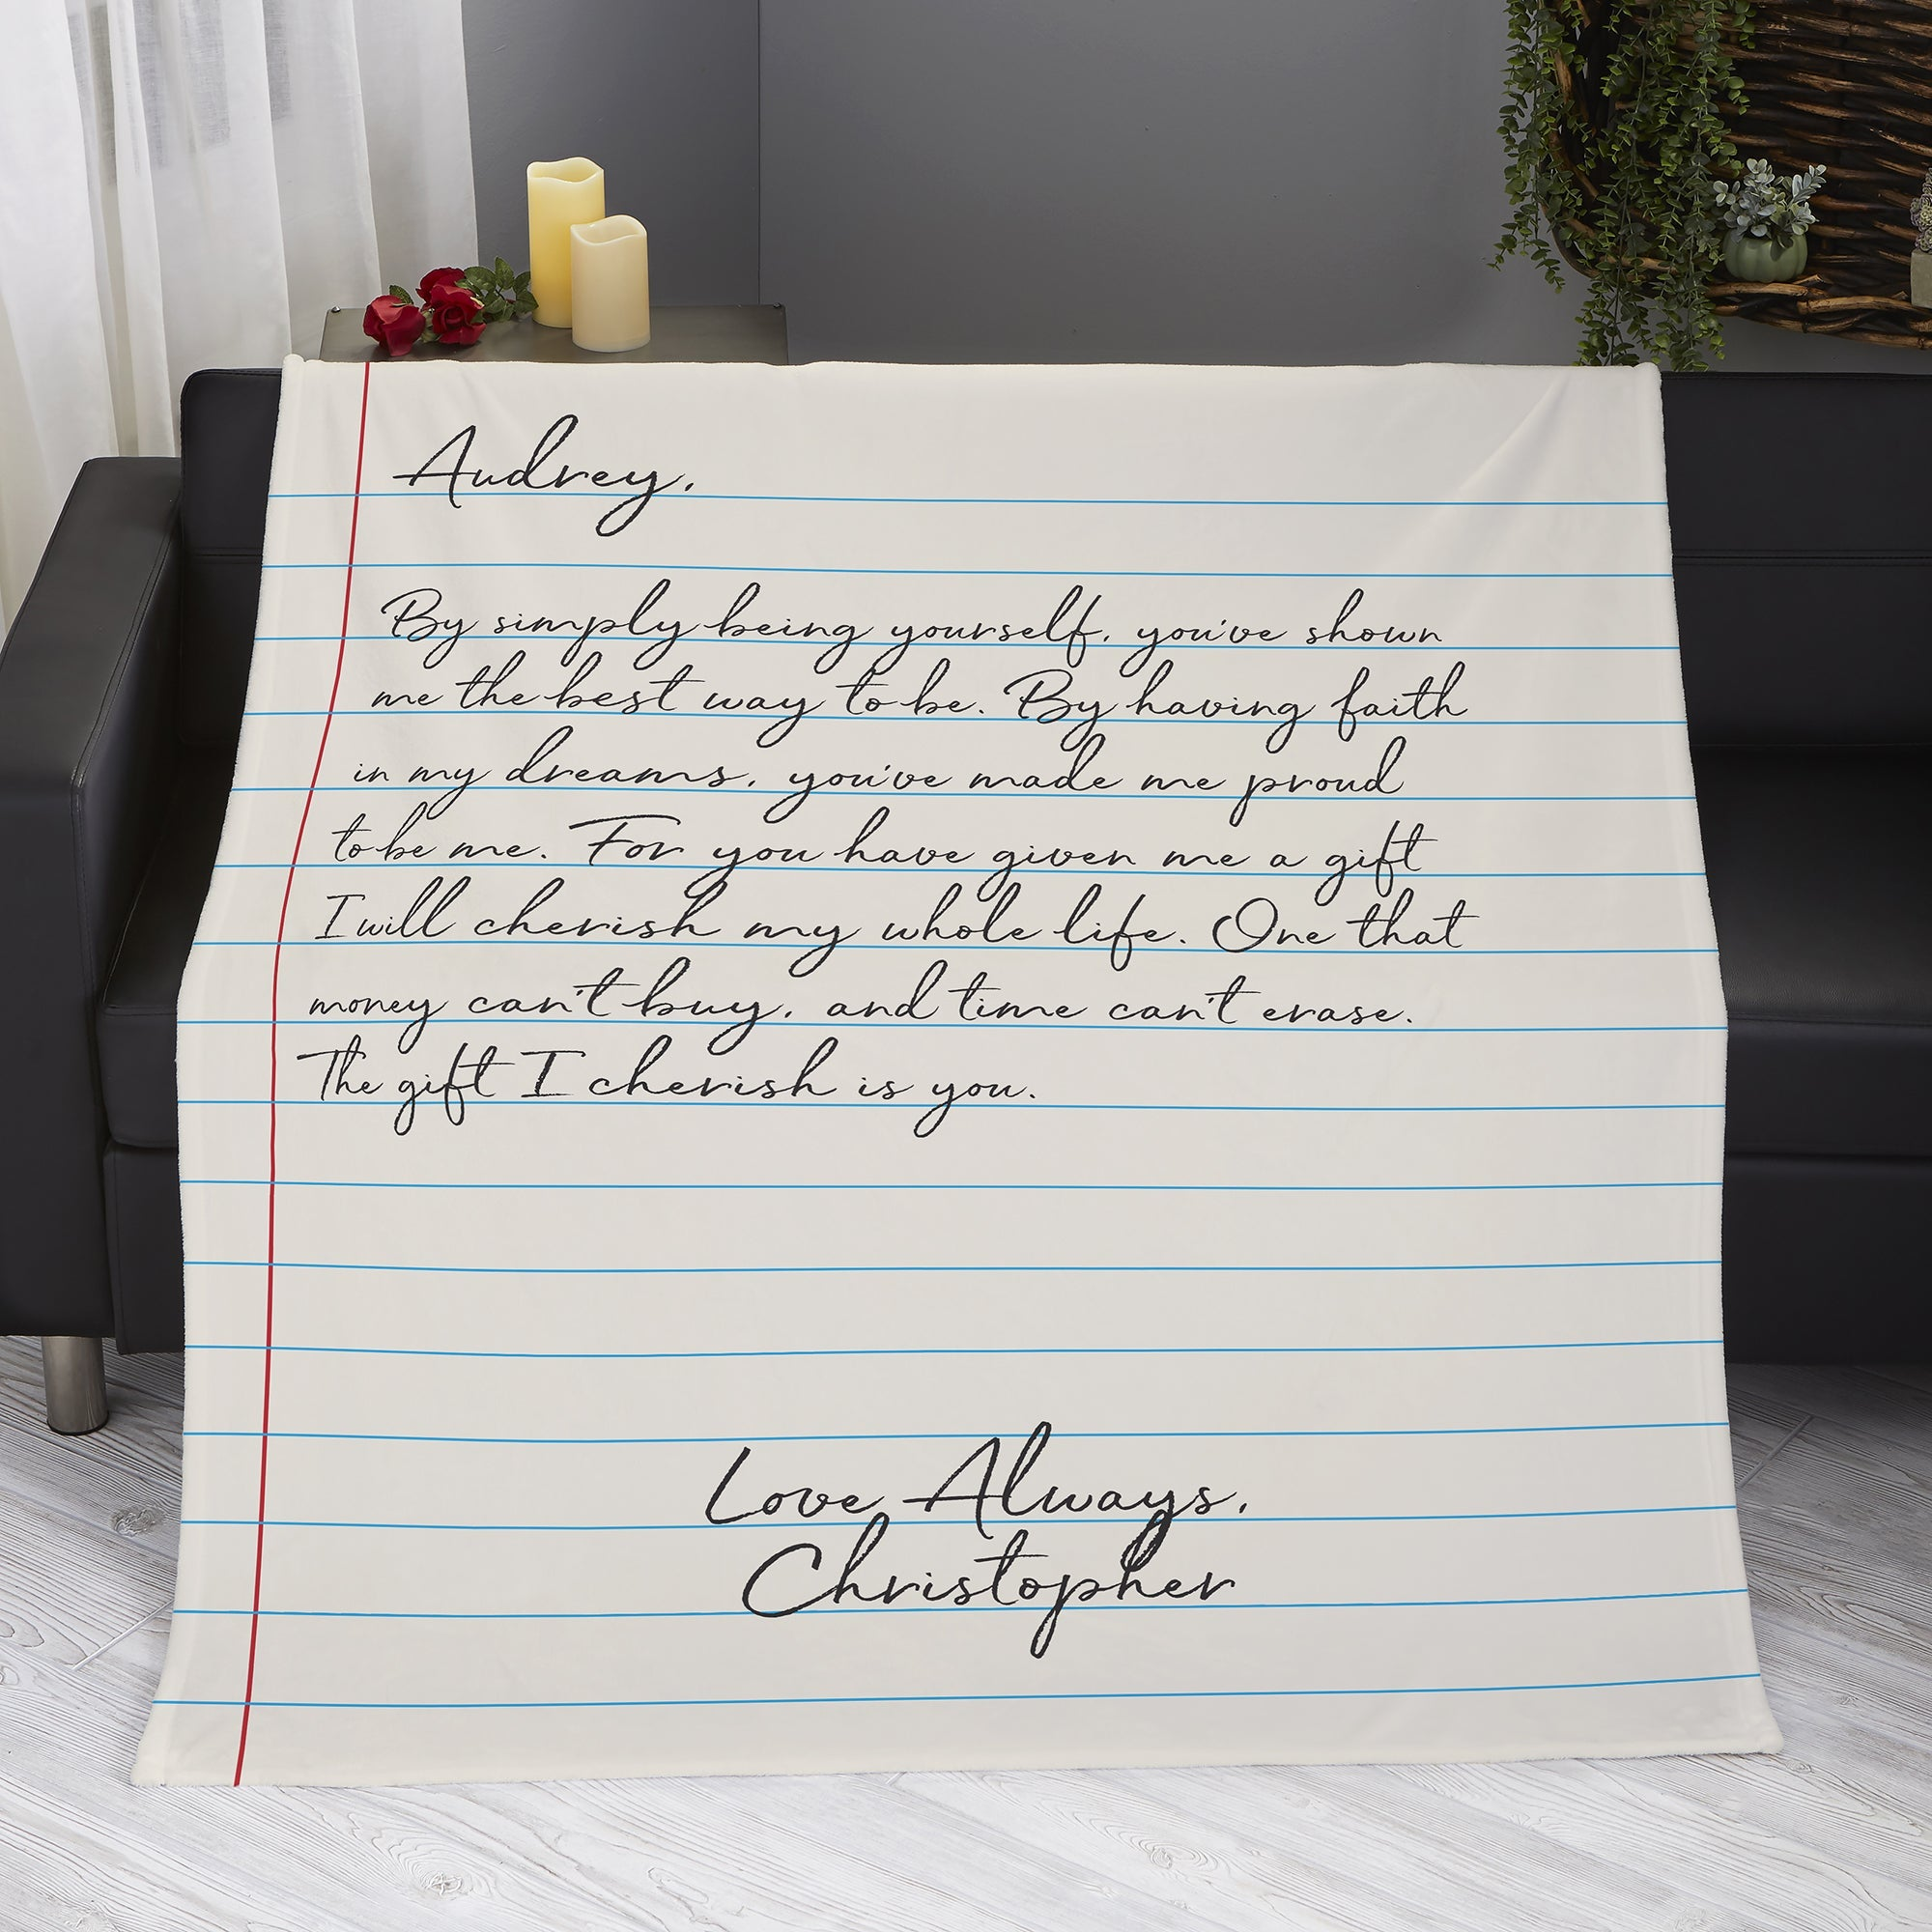 the blanket printed to look like notebook paper with a love letter written on it